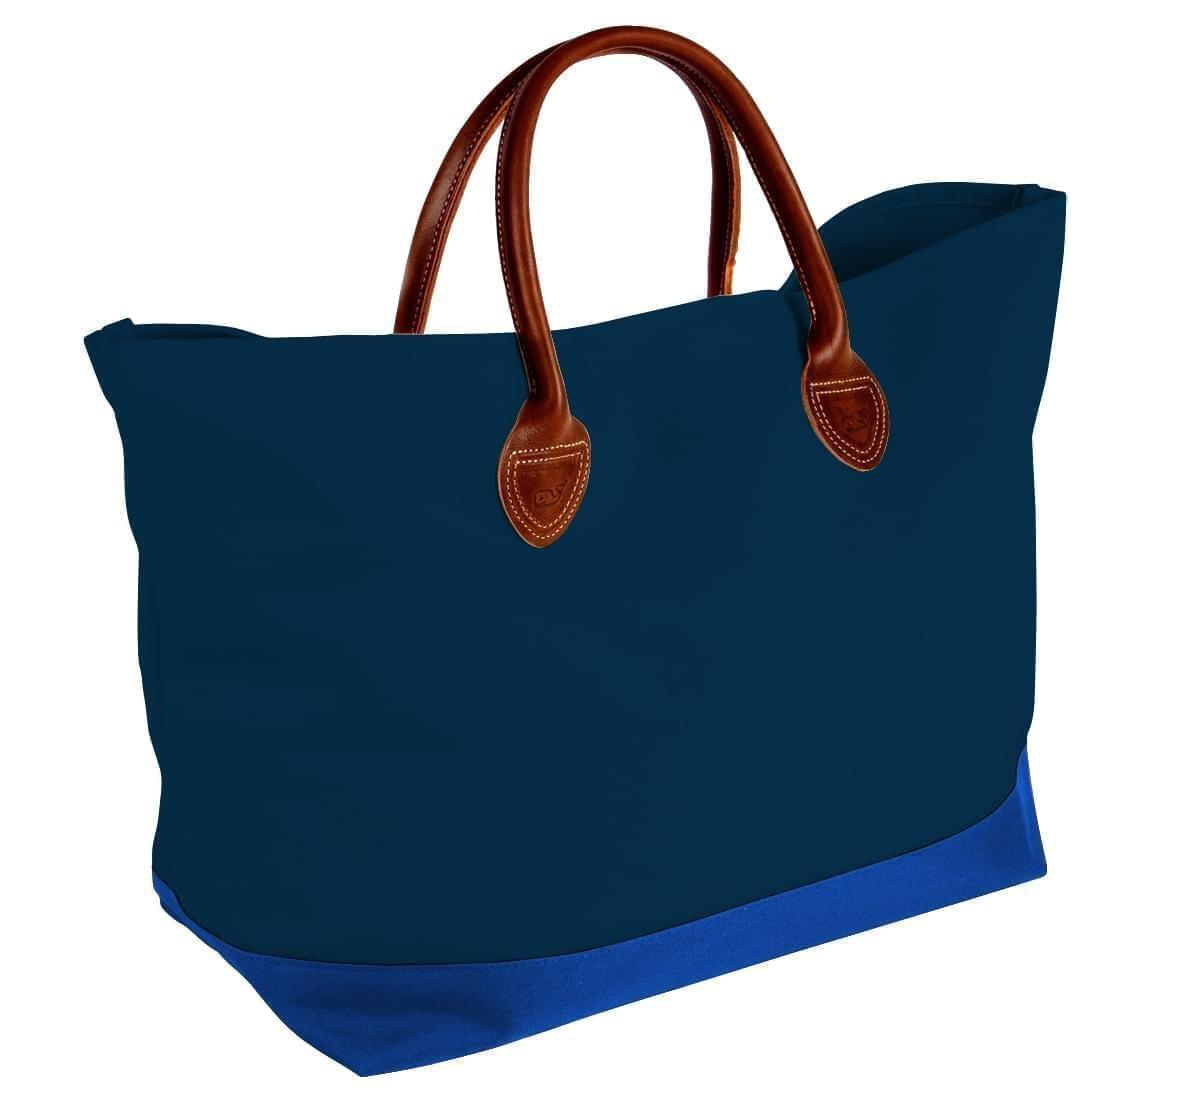 USA Made Canvas Leather Handle Totes, Navy-Royal Blue, 10899-MC9